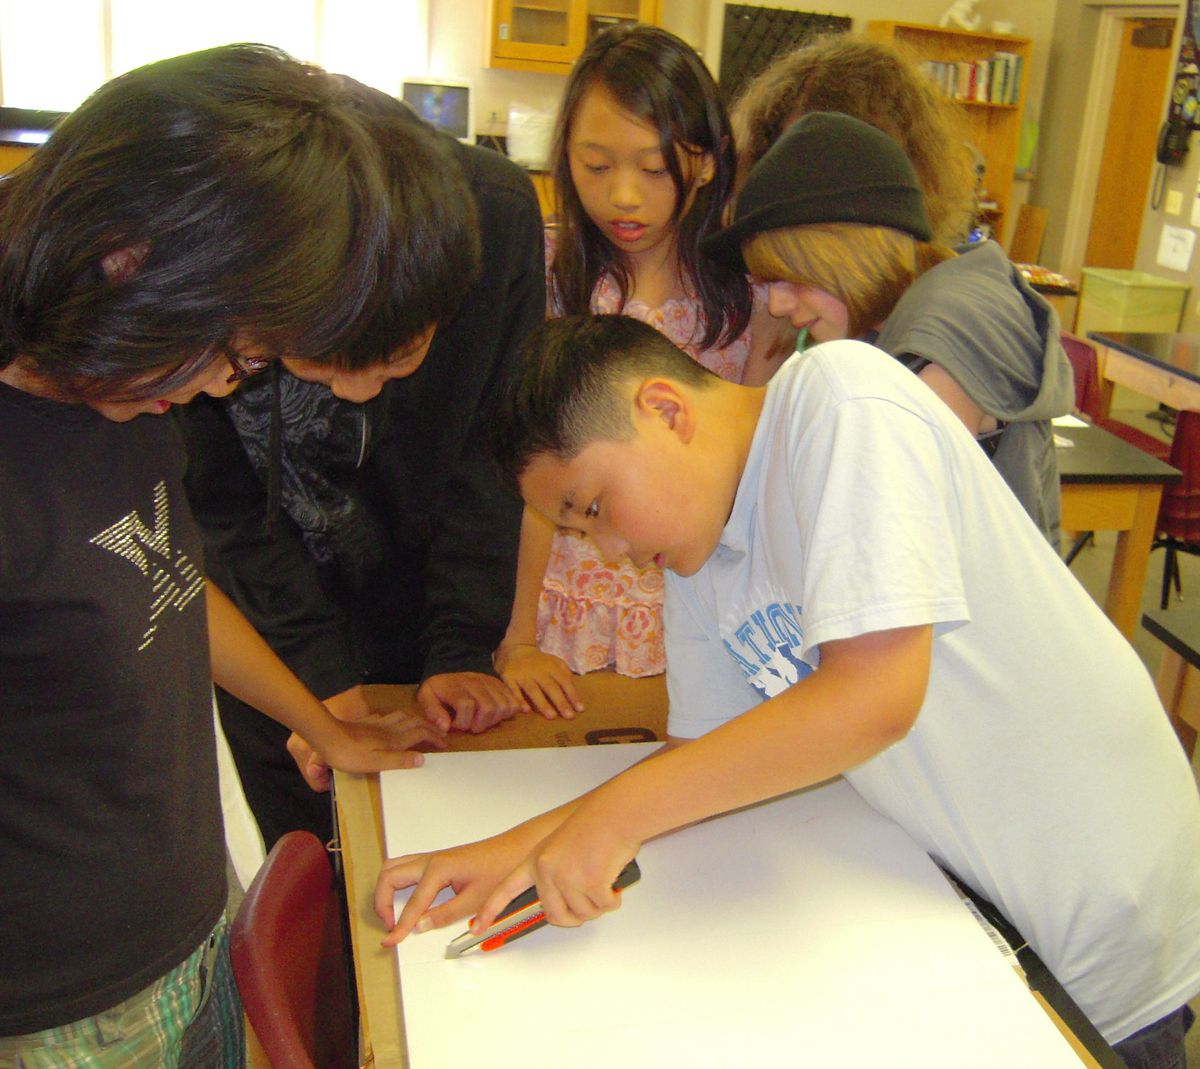 Students work to create a model of a hand for use in a hand-washing display.